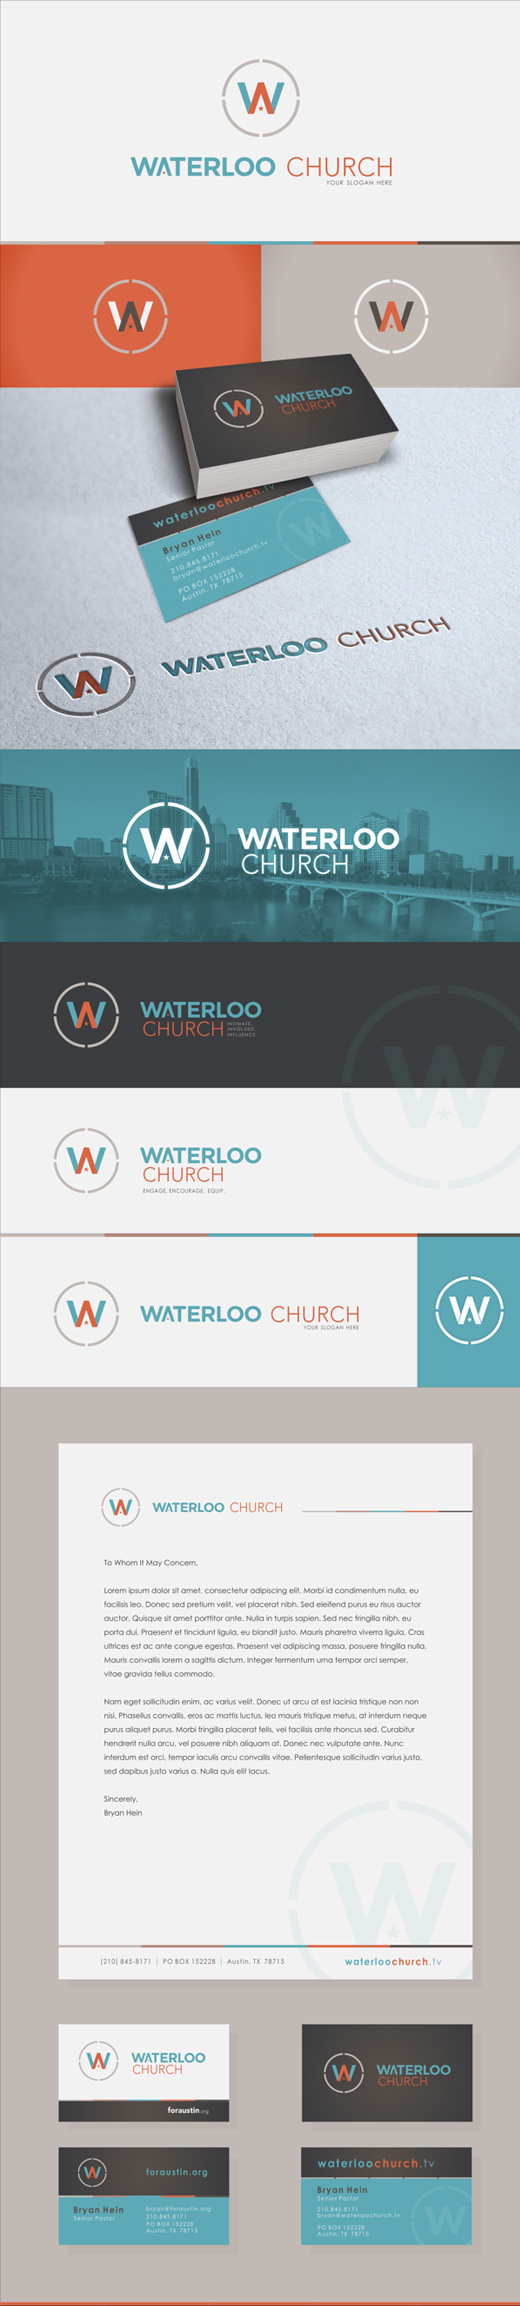 waterloo church logo design